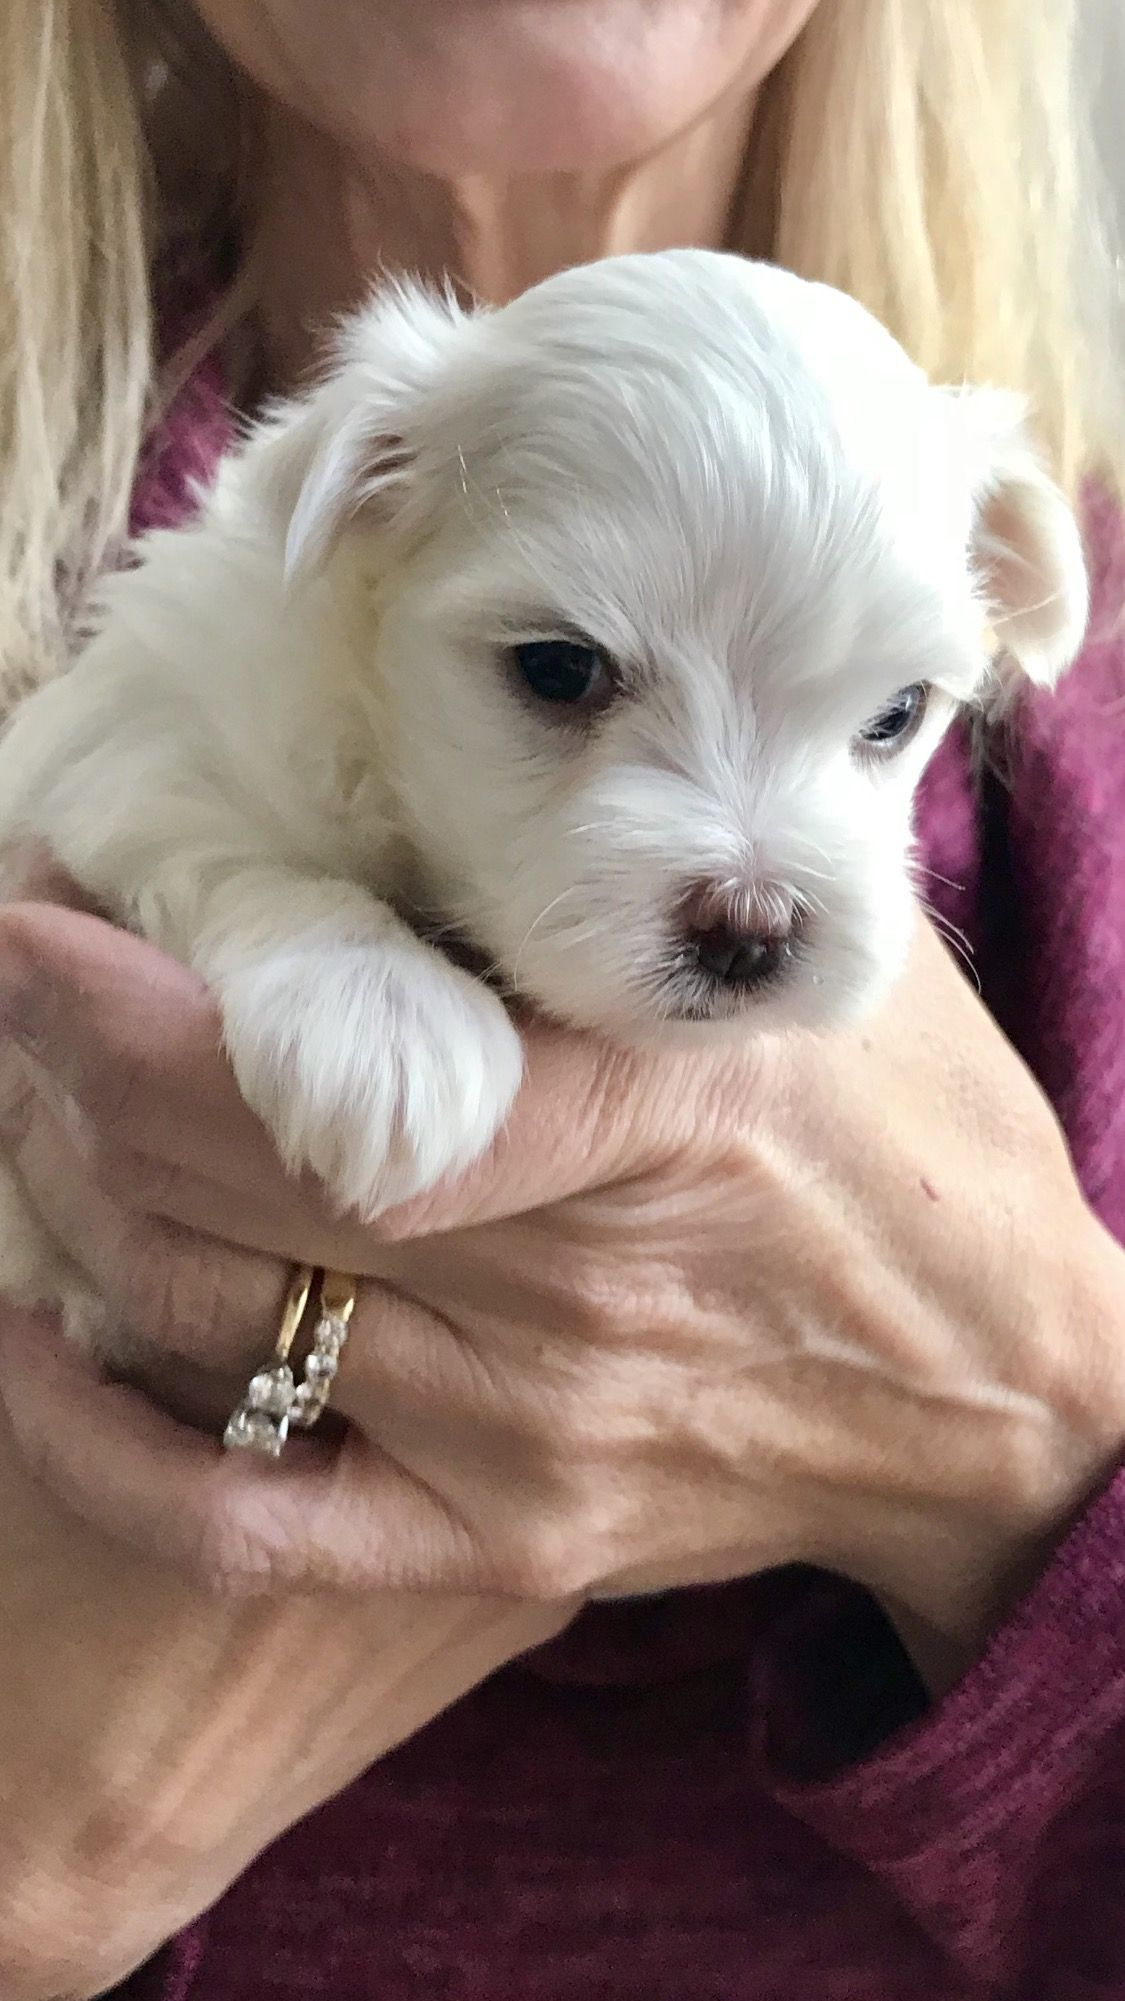 4 Weeks Old And Already Stealing Hearts With Images Fluffy